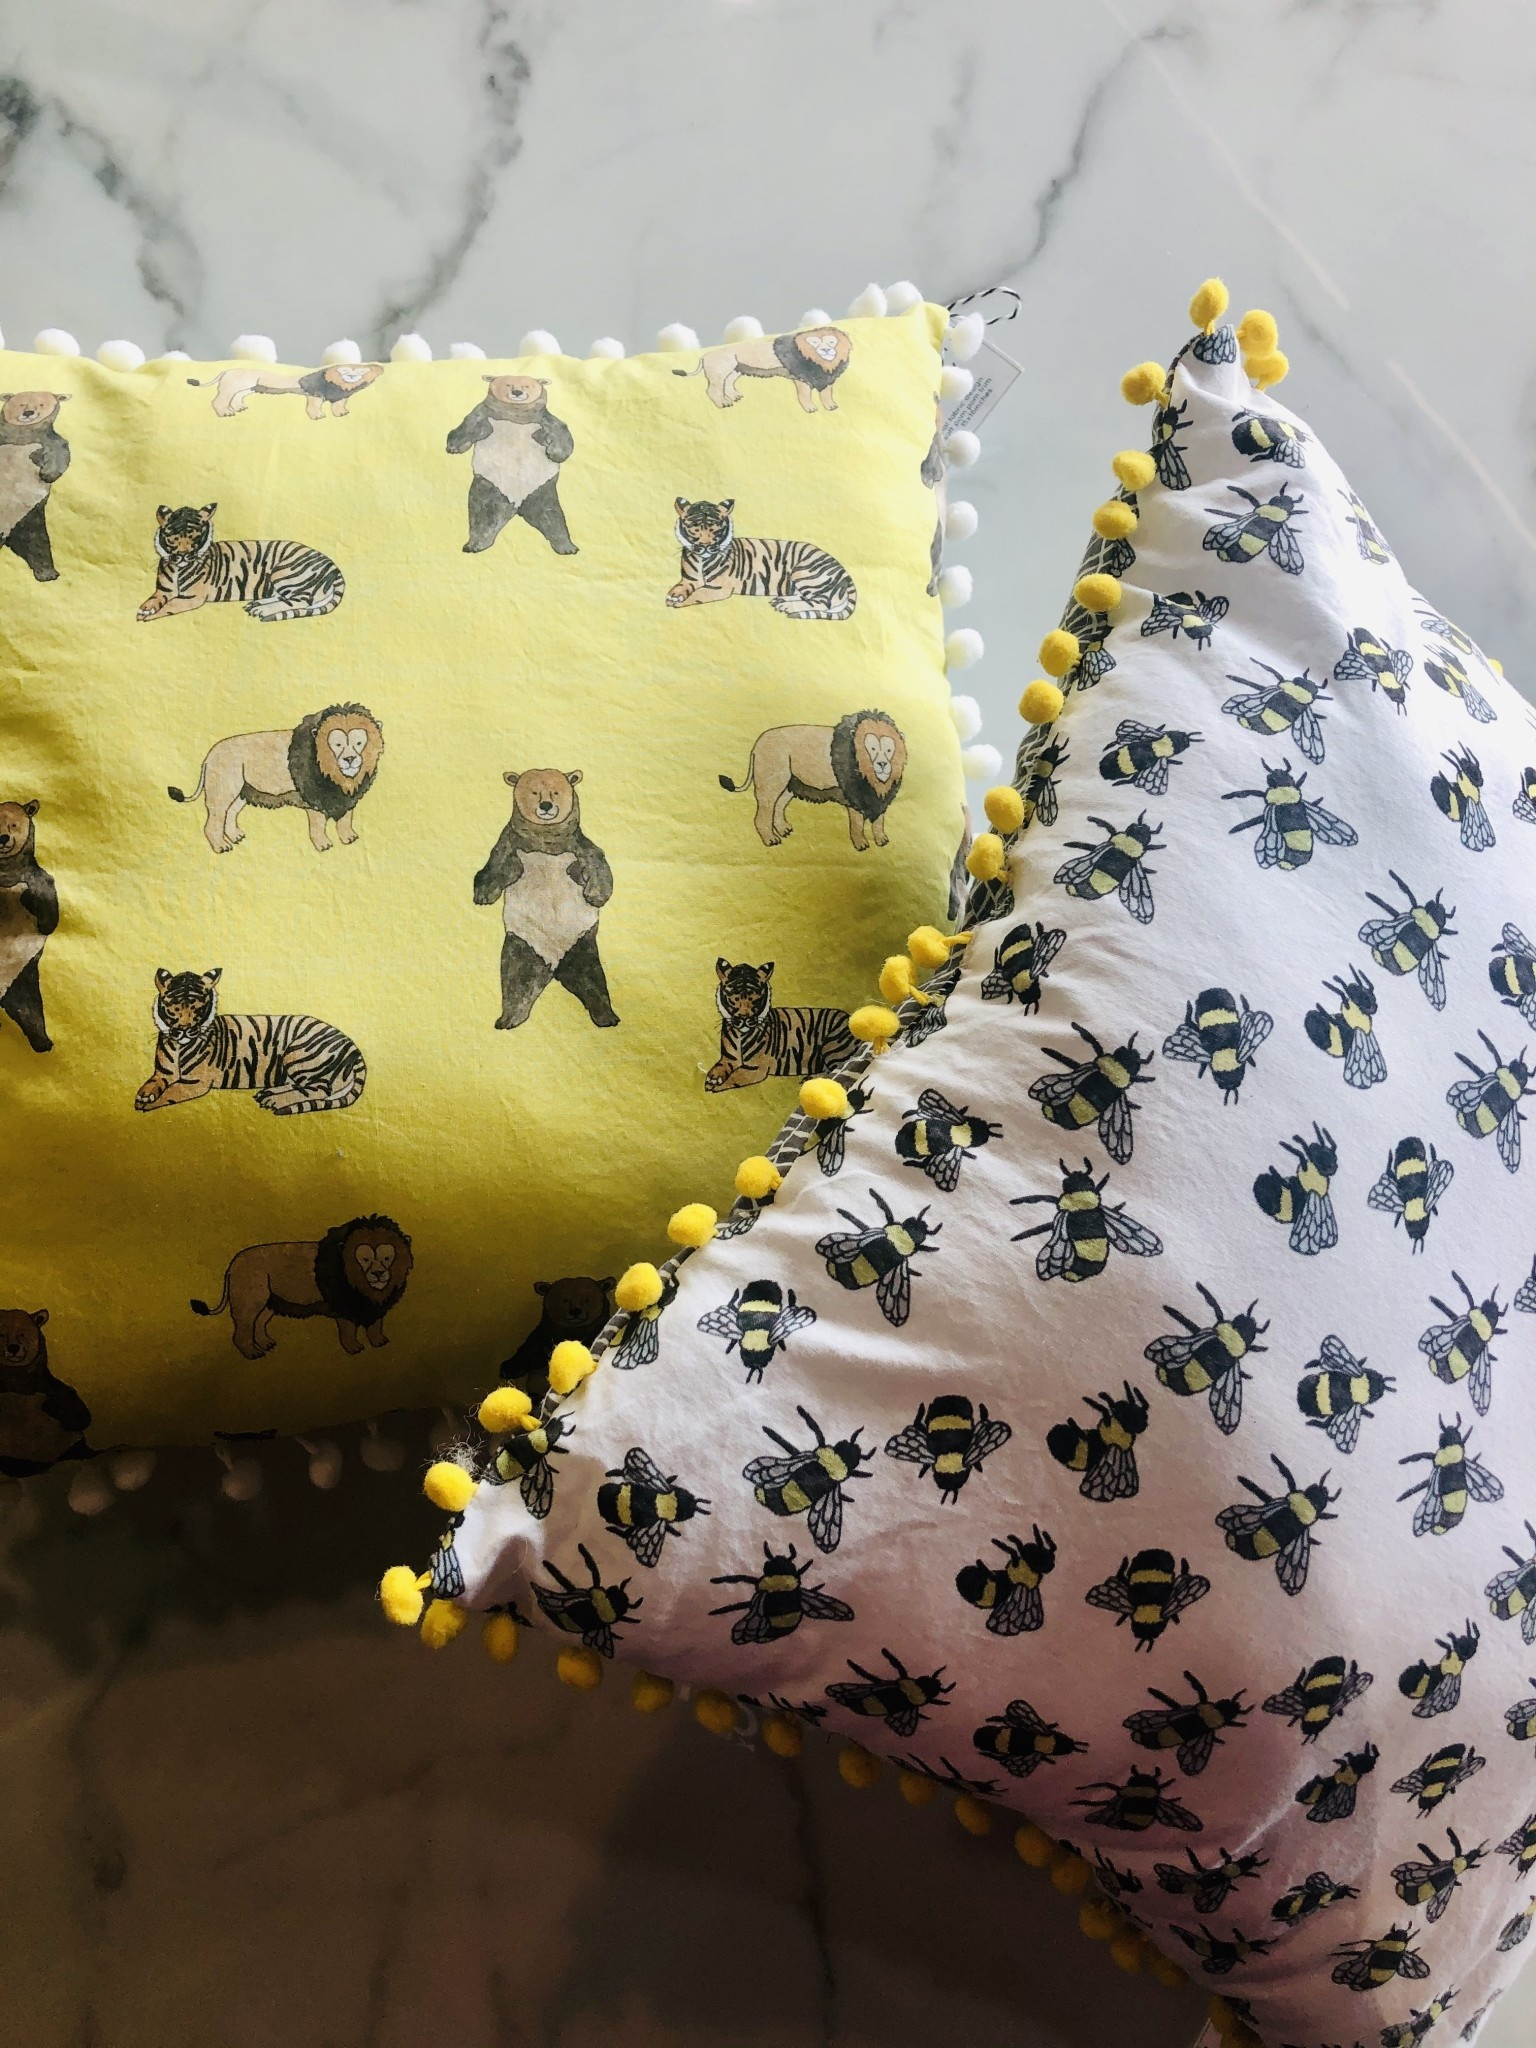 Lavender & Clover Illustrated Pillows